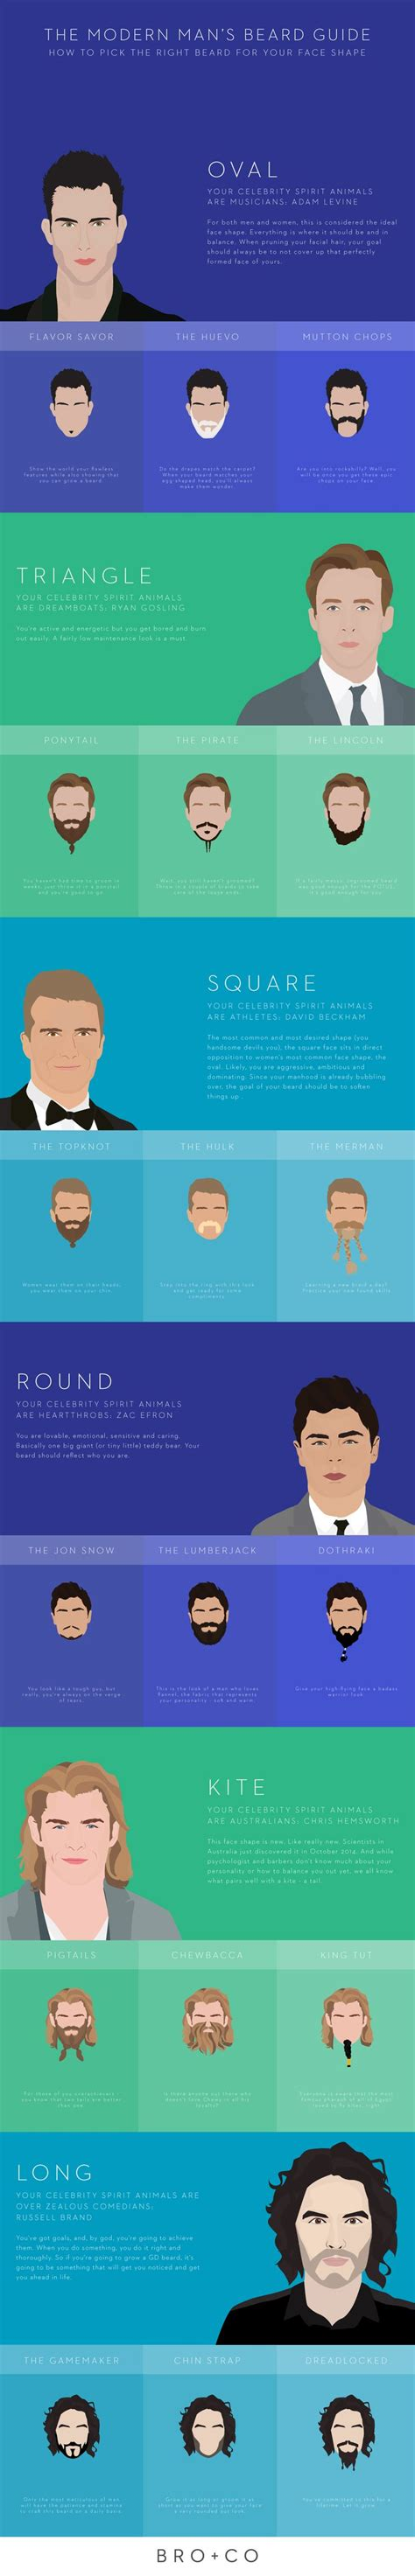 how to choose the right beard according to your face shape how to pick the right beard for your face shape the o